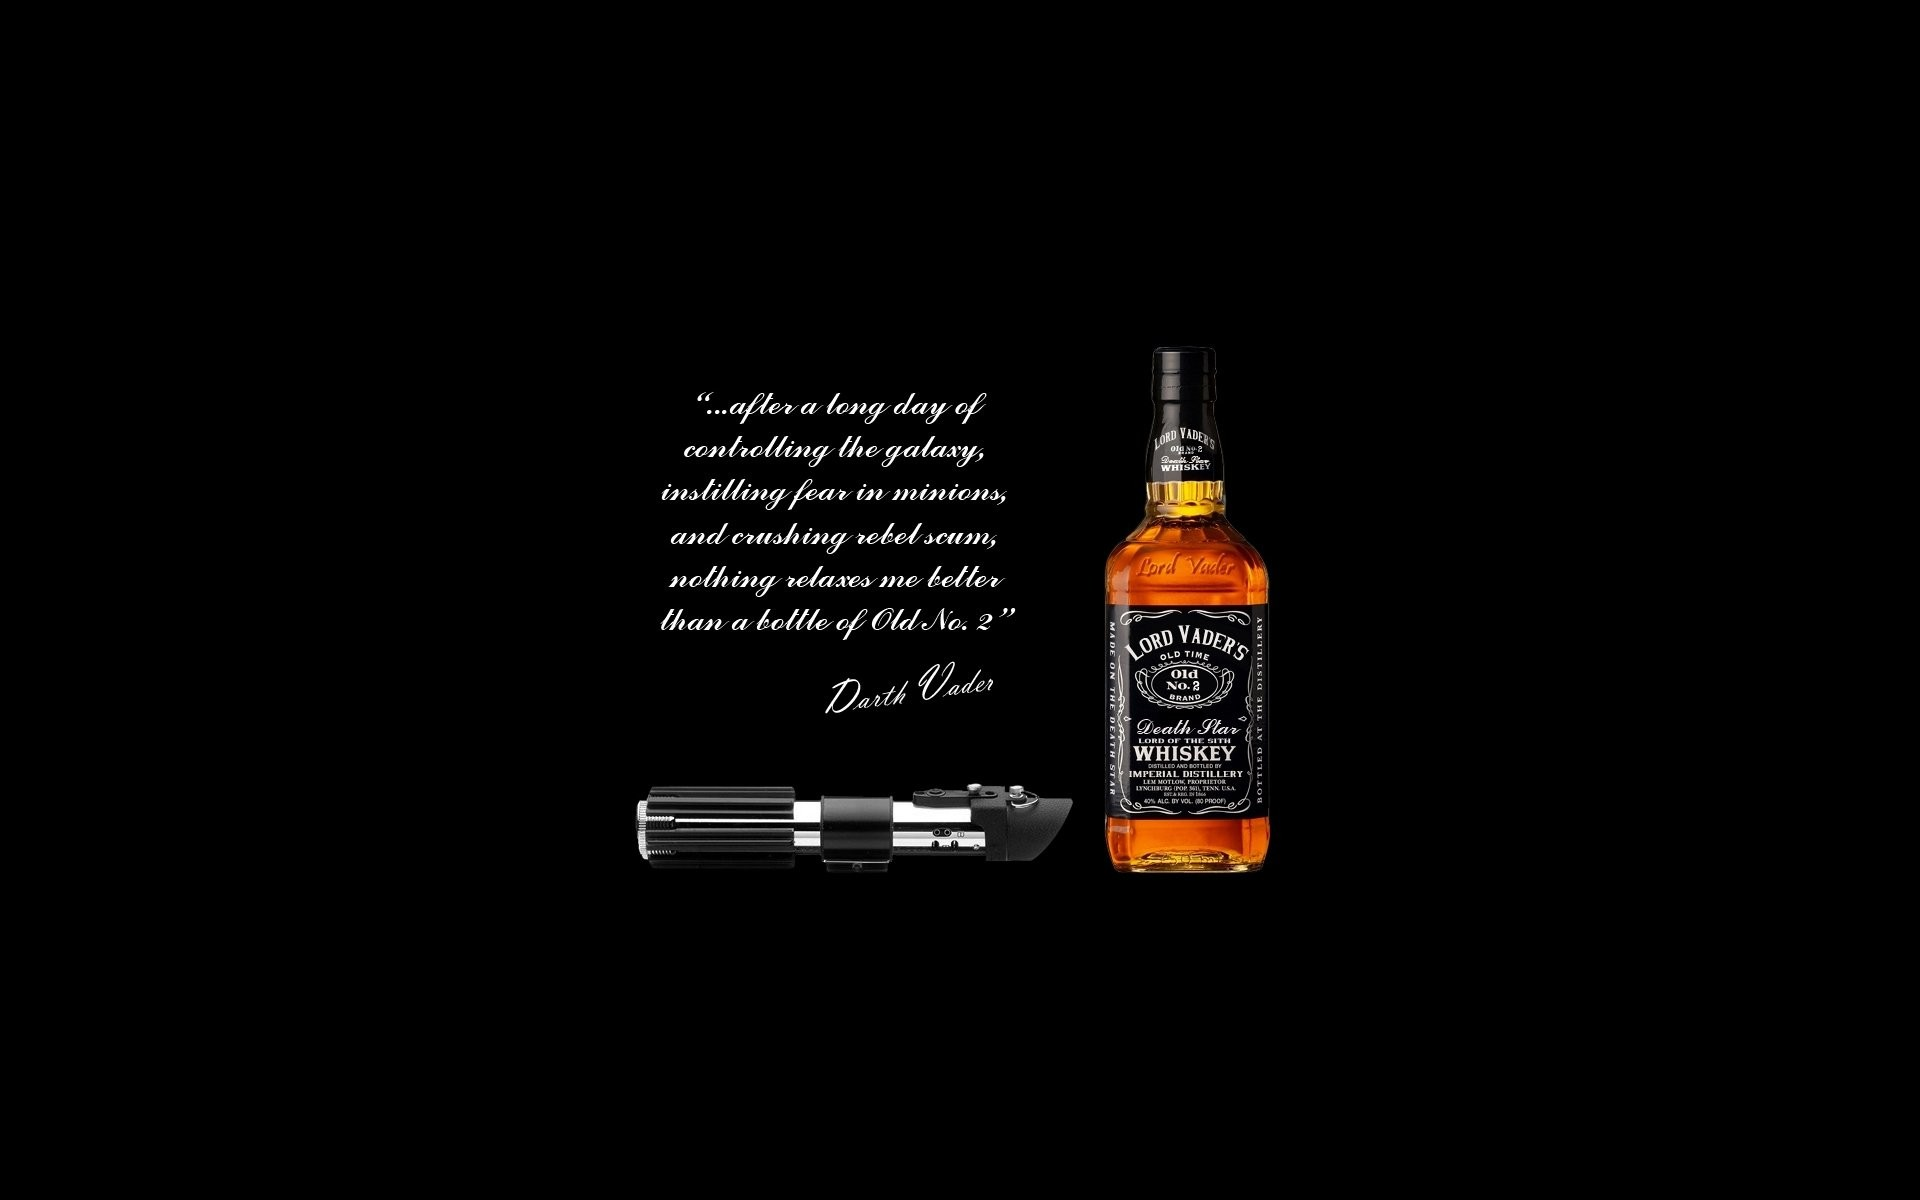 1920x1200 Humor - Movie Humor Star Wars Black Alcohol Darth Vader Whisky Lightsaber  Wallpaper